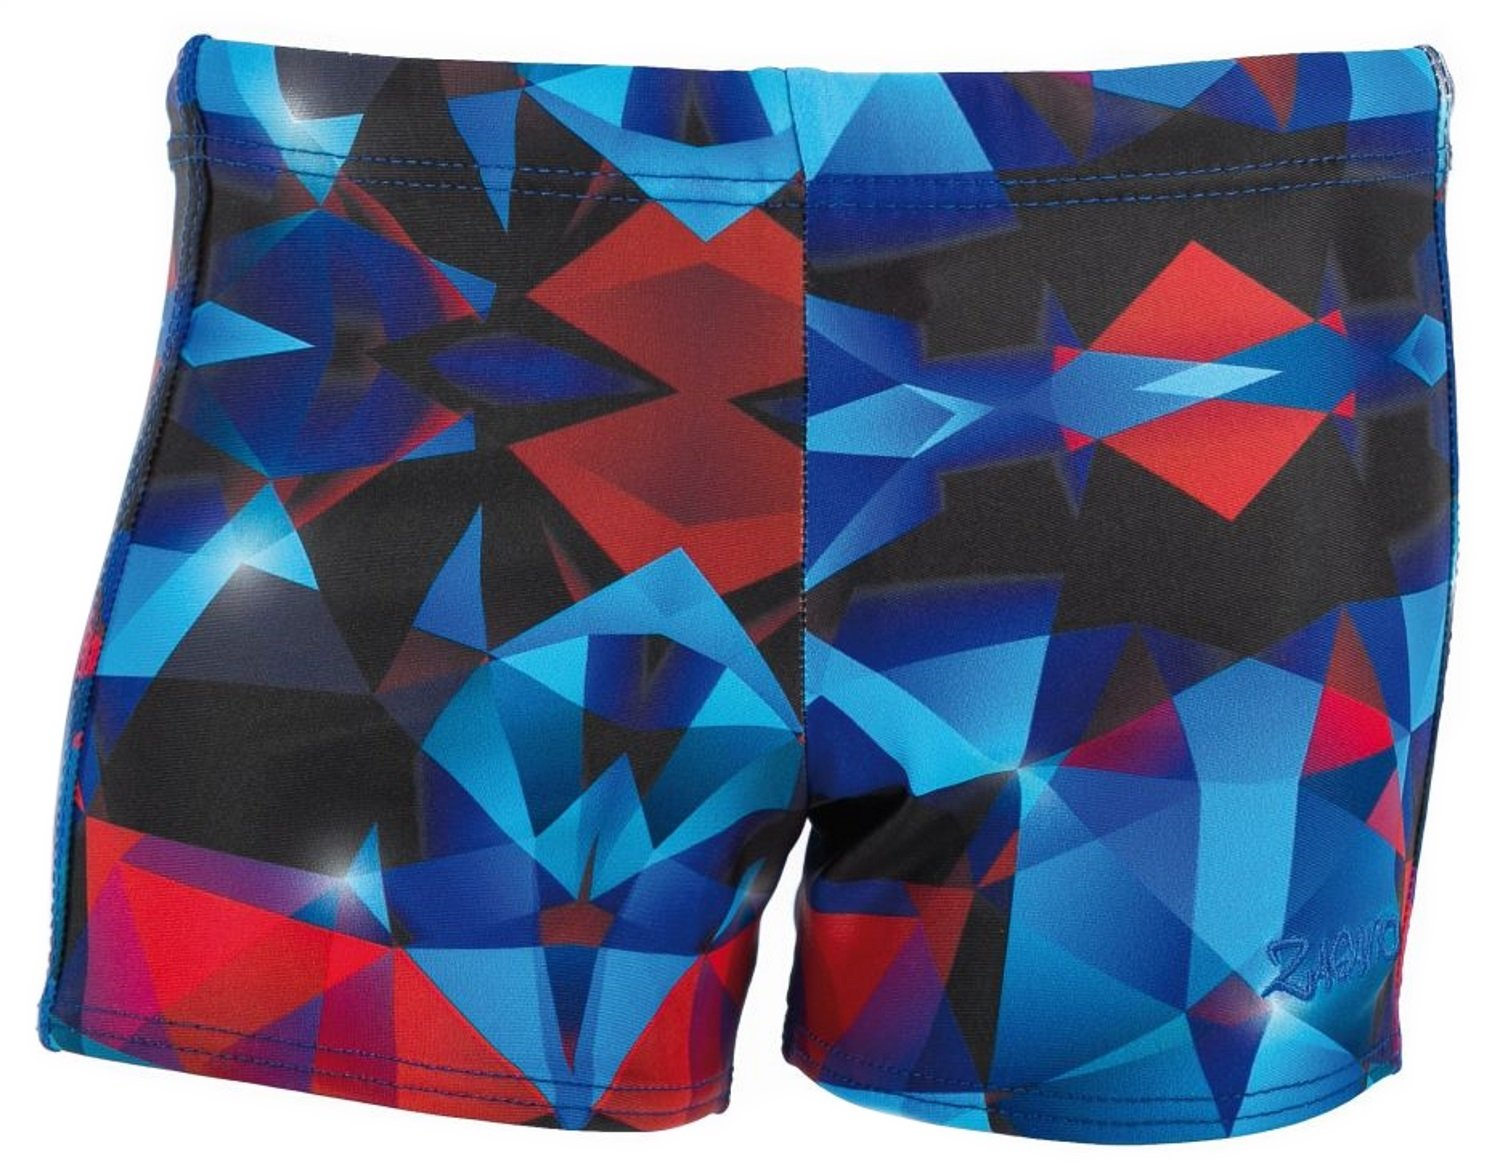 Zagano 2821 Children Boys Swimming Trunks/Swim Shorts Zagano Jungen Badehose 2821